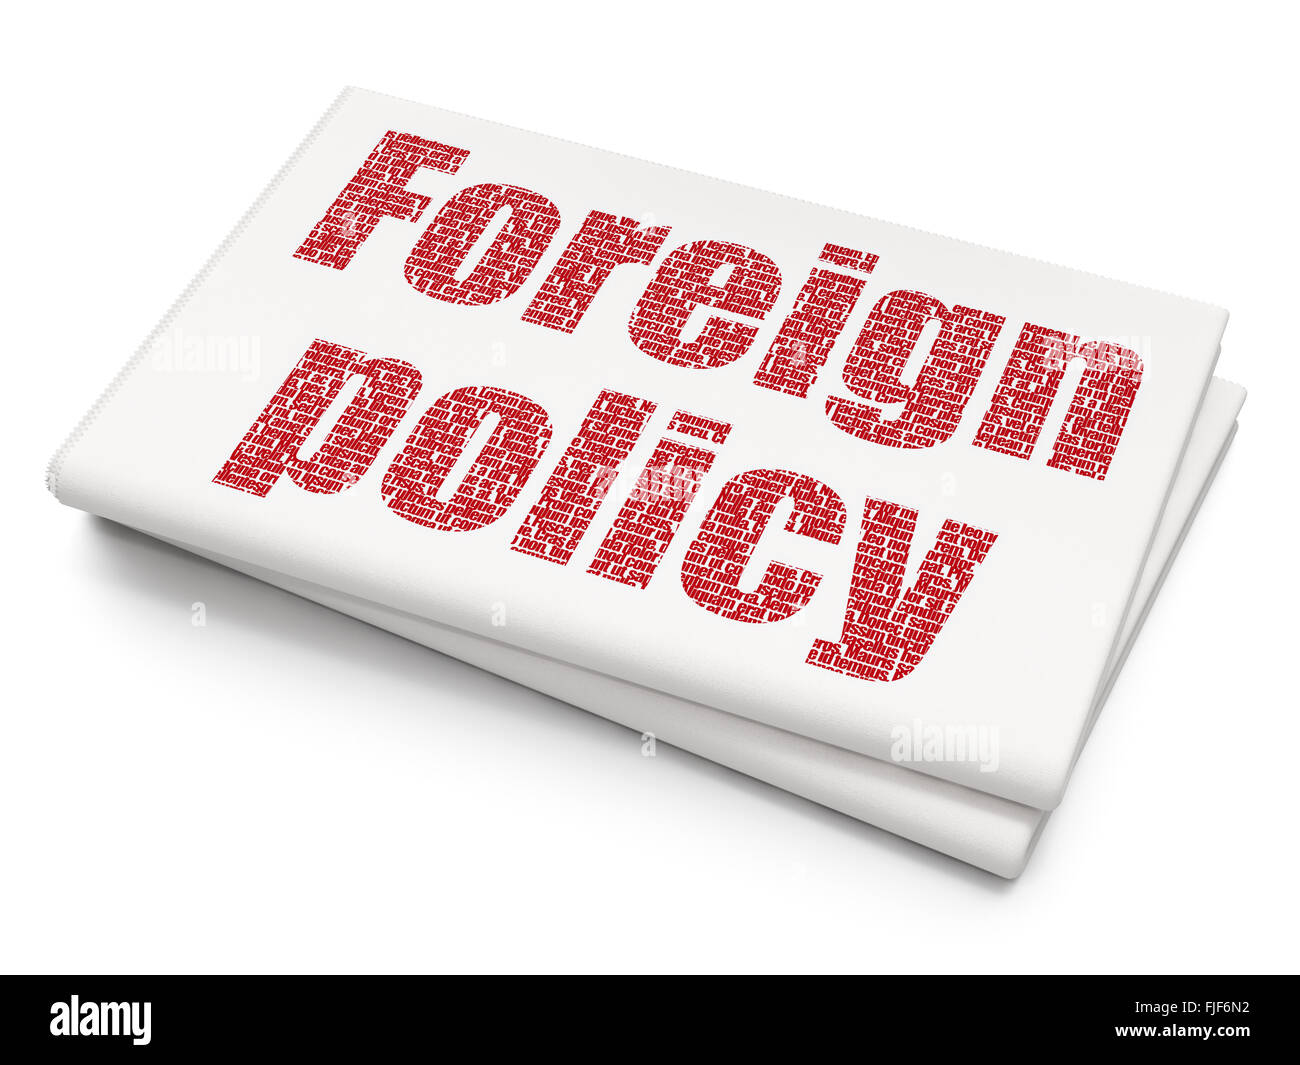 Political Concept Foreign Policy On Blank Newspaper Background